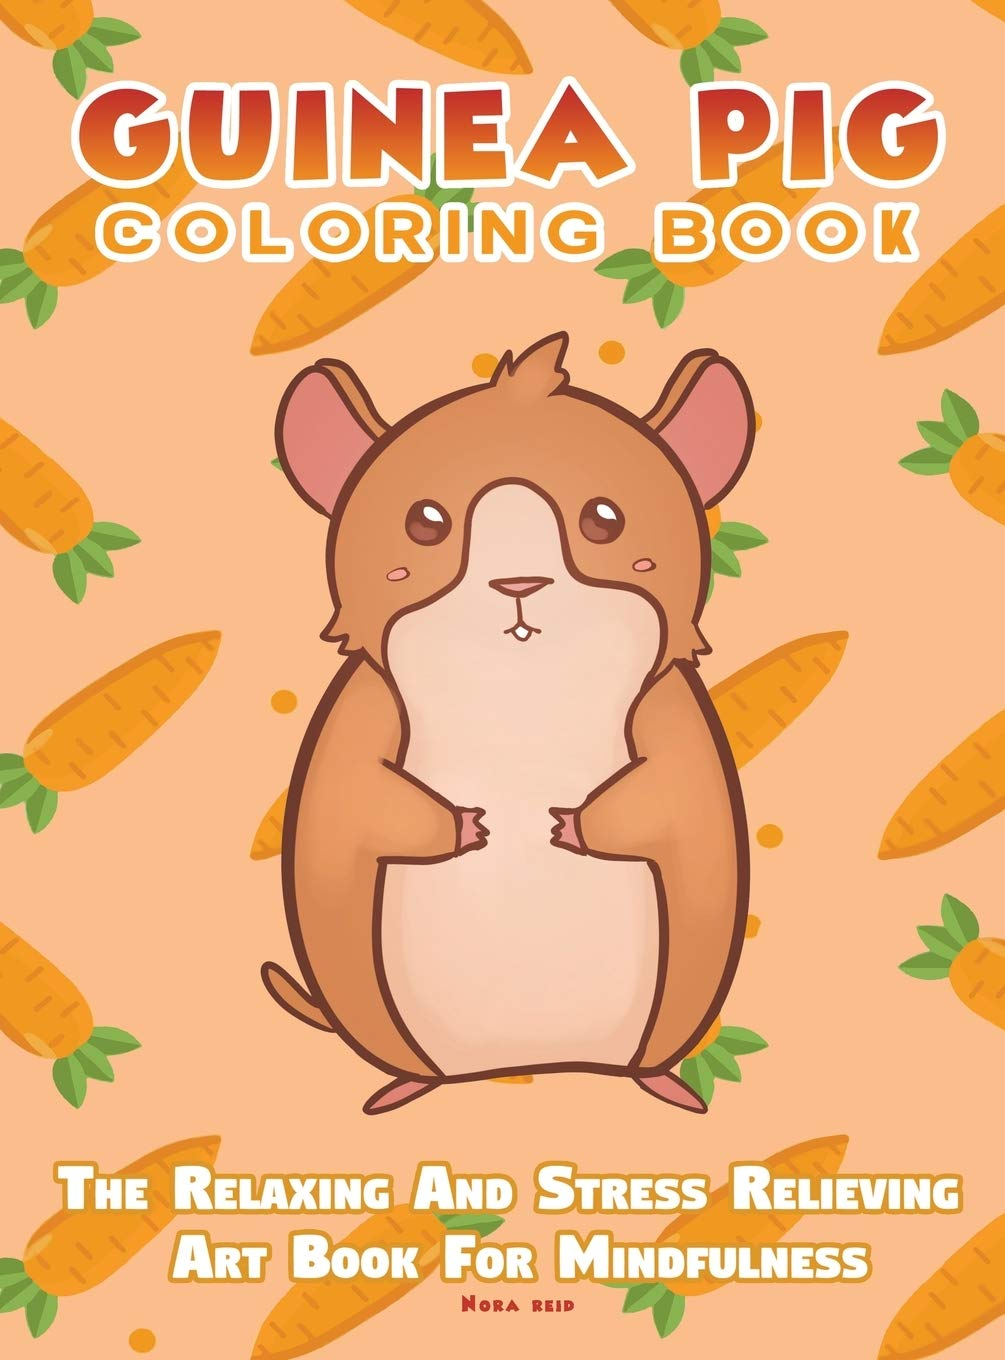 Guinea Pig Coloring Book - The Relaxing And Stress Relieving Art